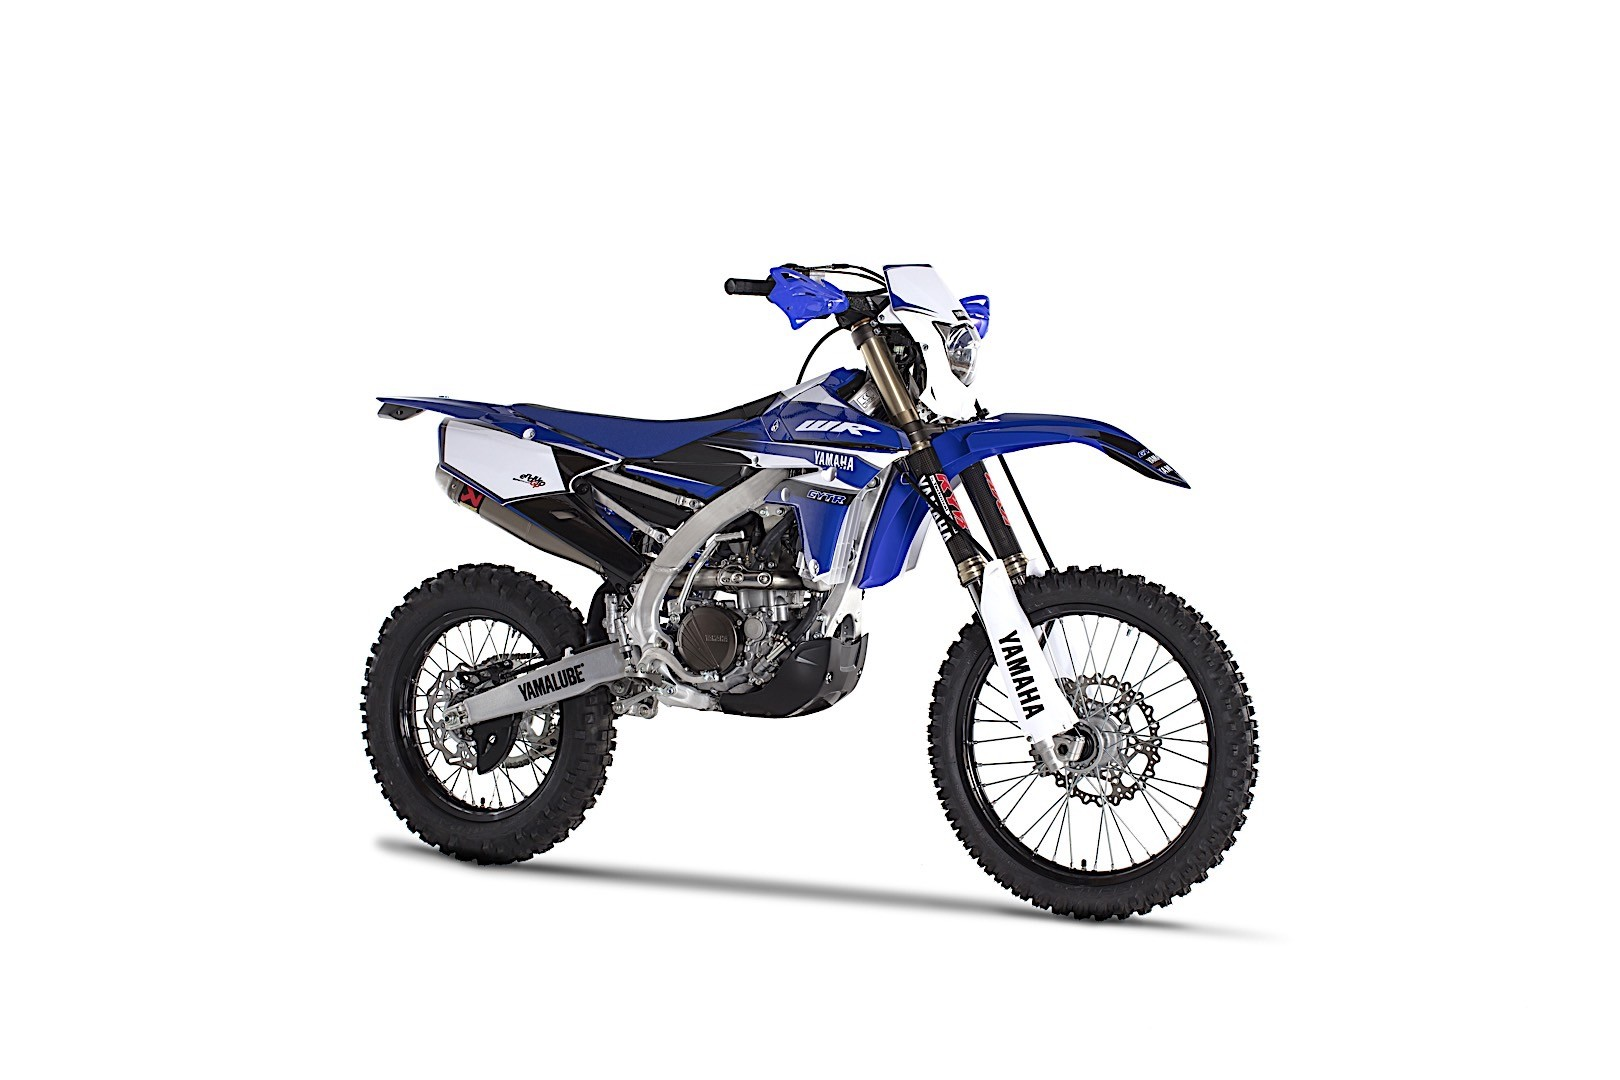 2018 Yamaha WR450F and WR250F EndoroGP Special Editions